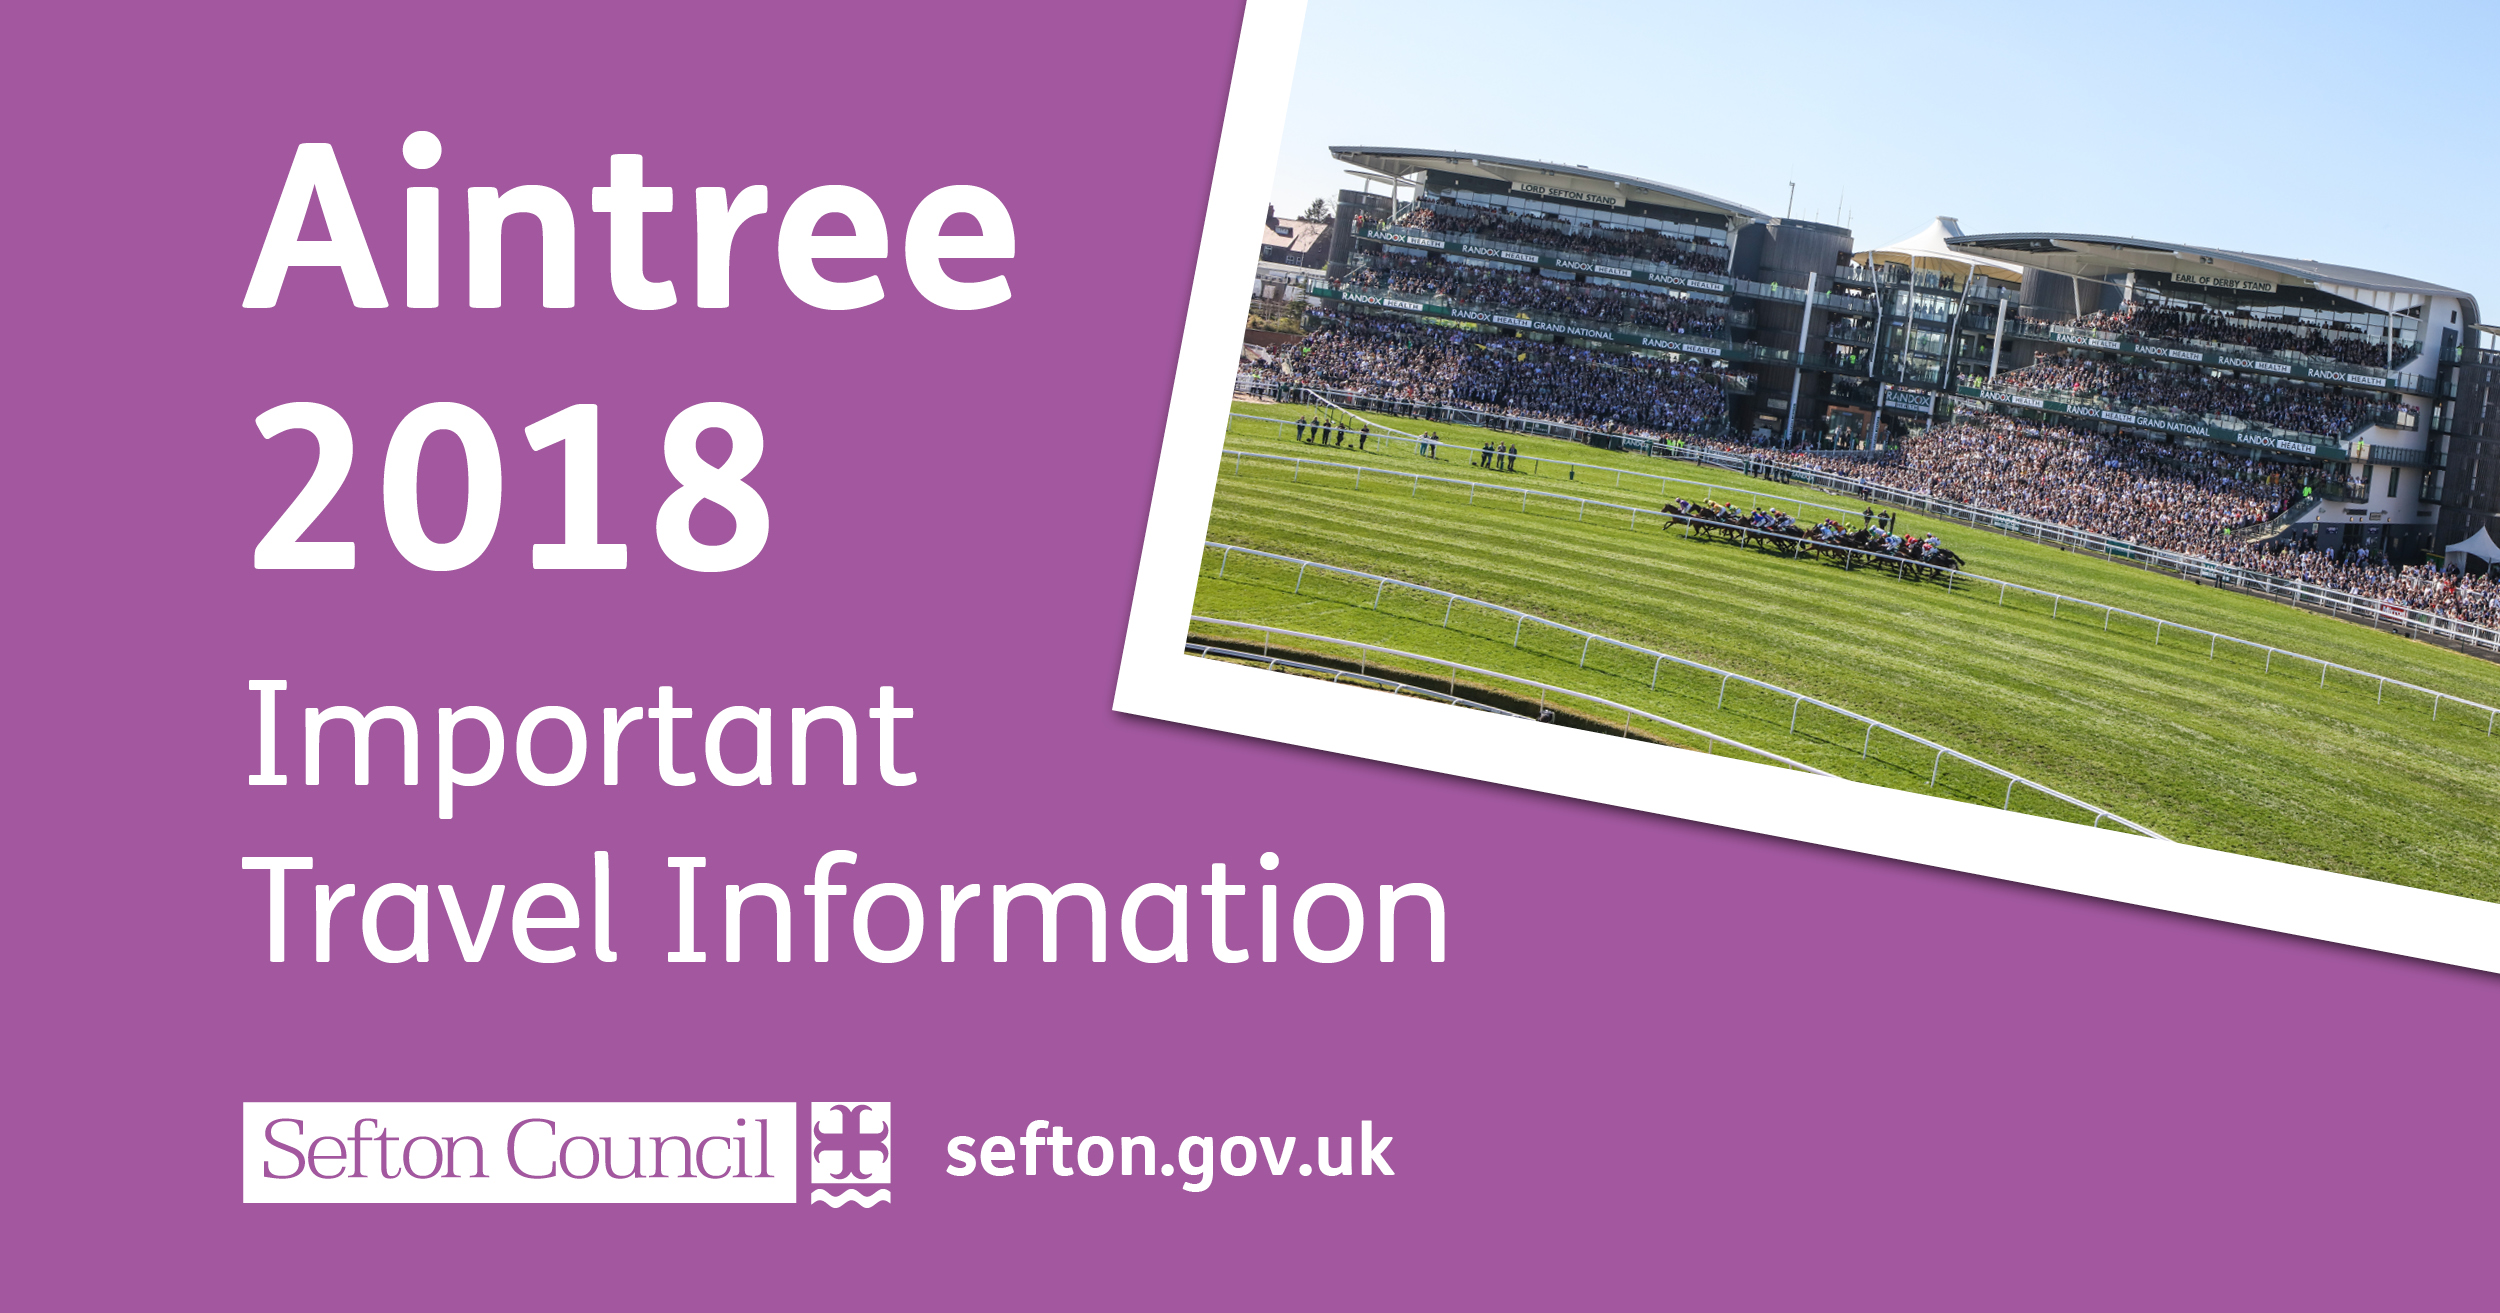 Important Travel Information: Aintree Festival